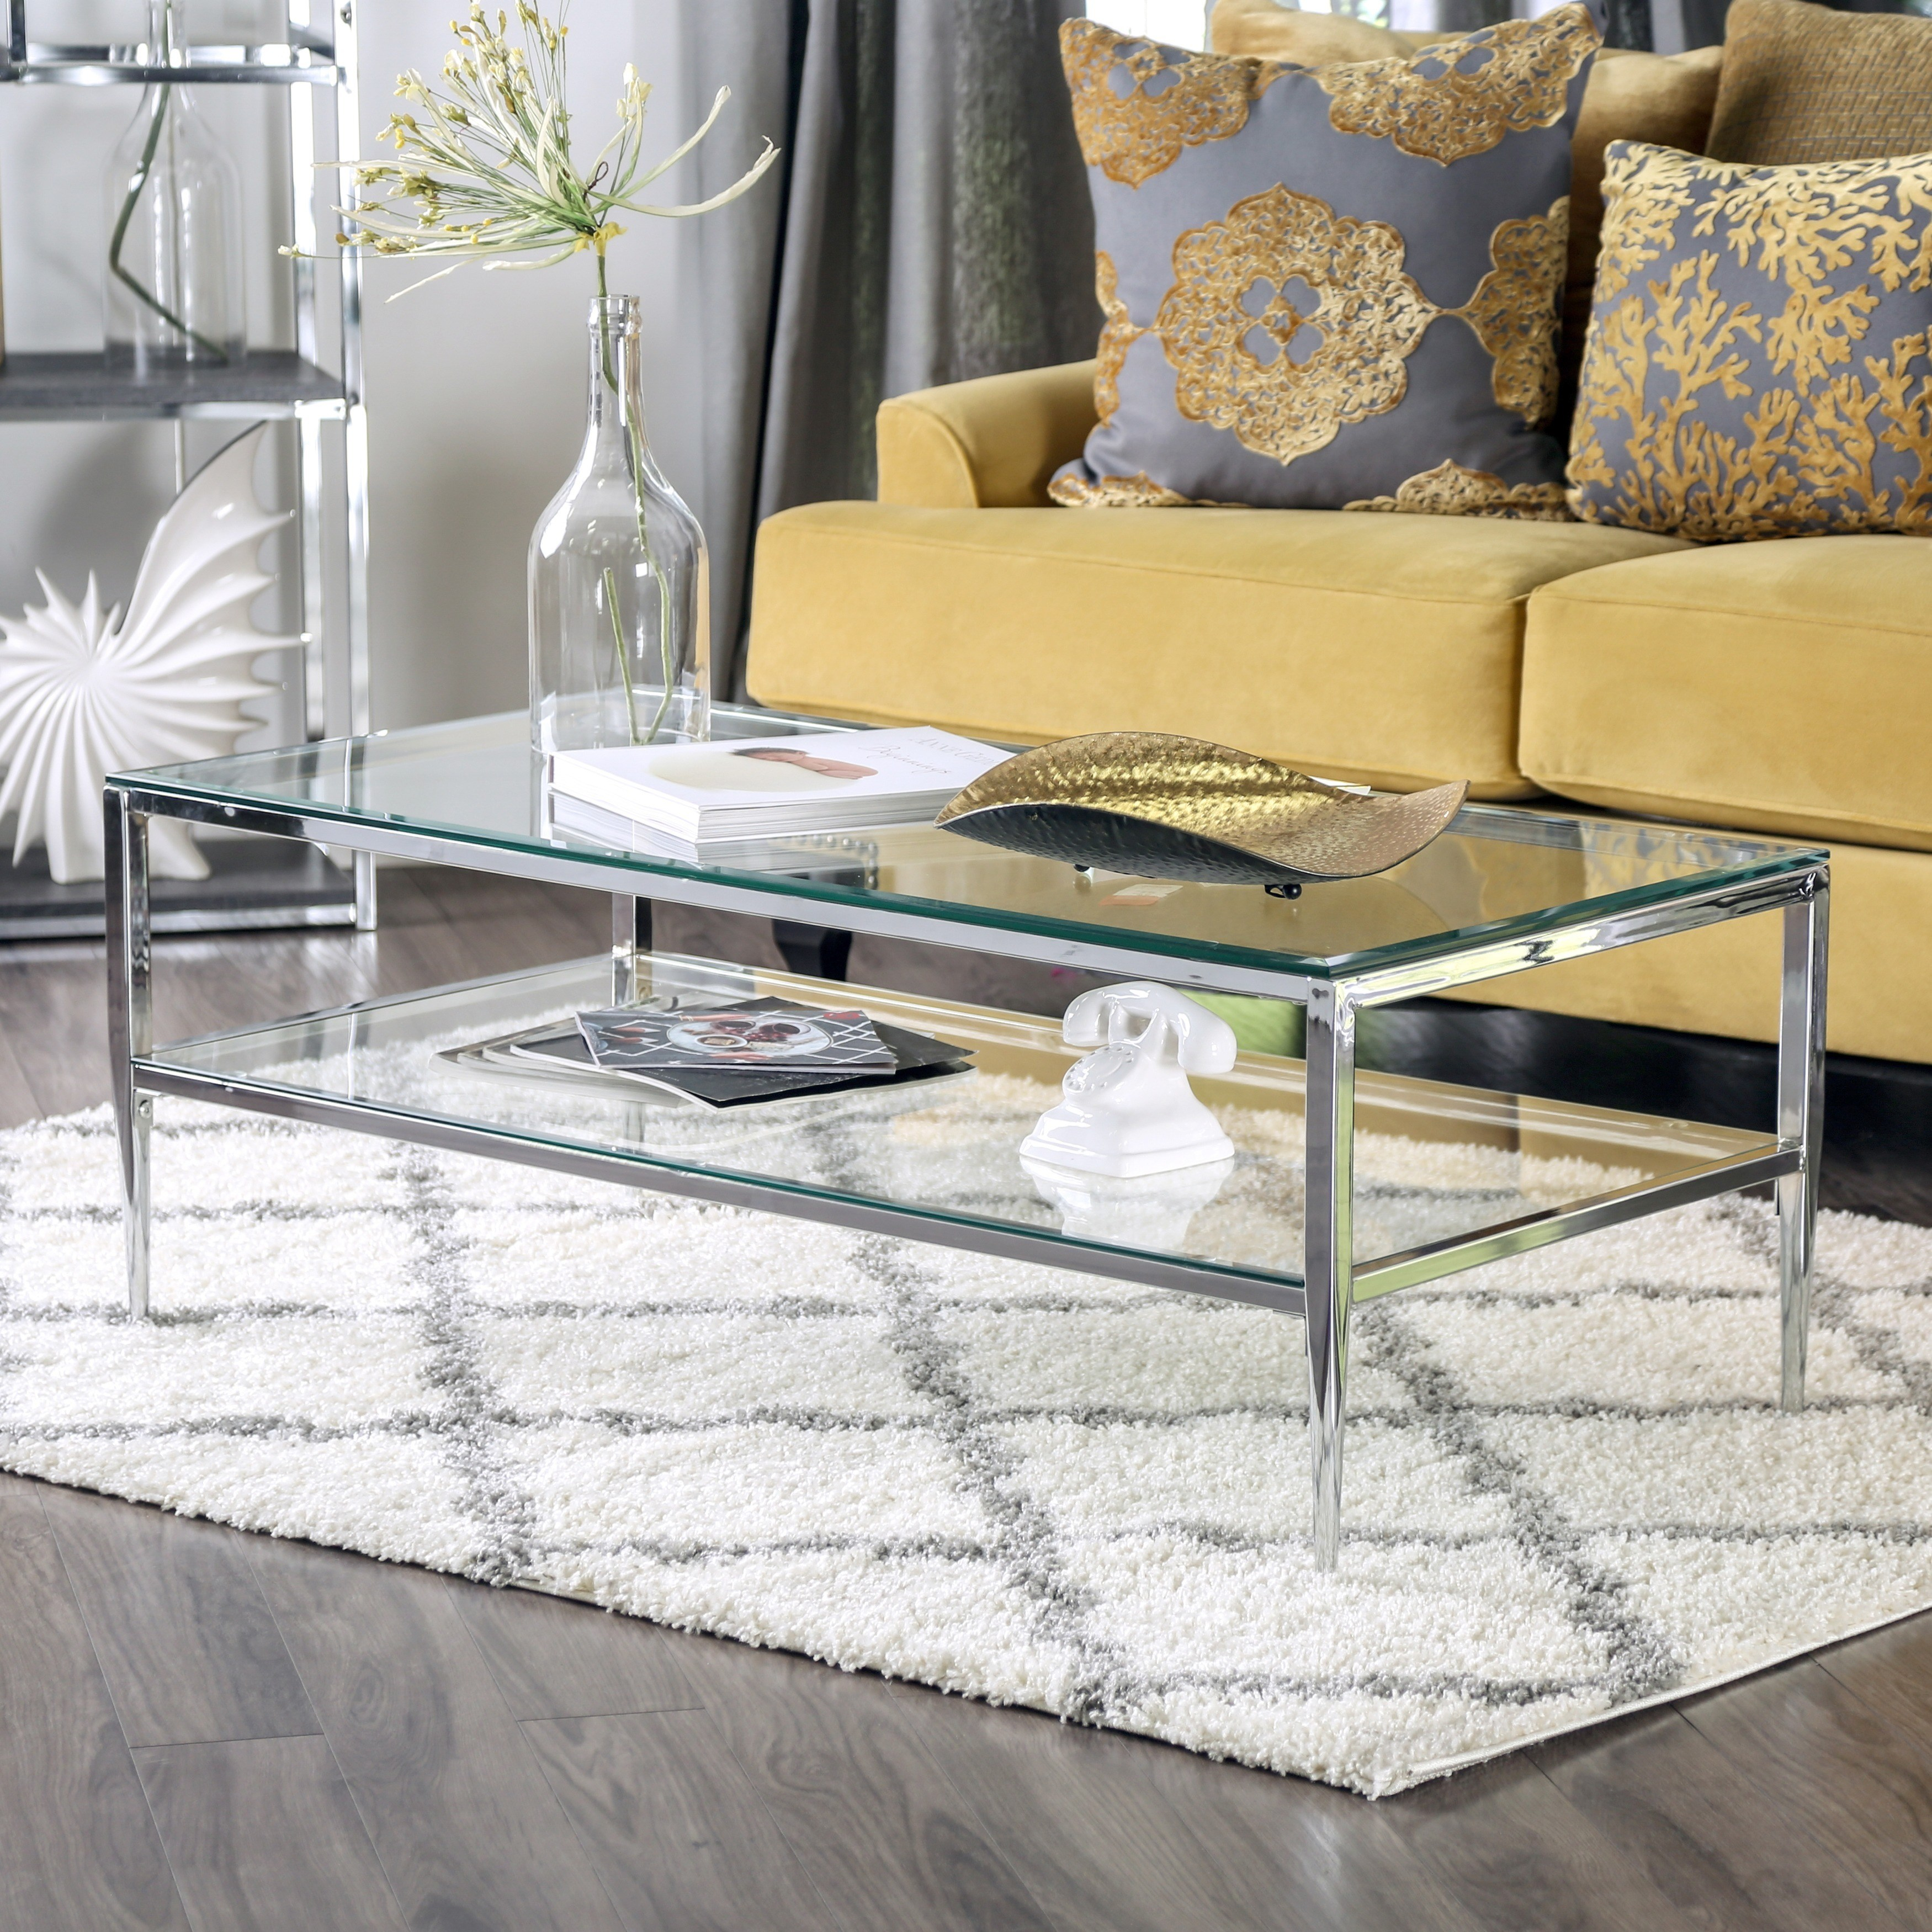 furniture america midiva contemporary metal piece accent table set living room sets free shipping today very small side accessory tables three gold glass top coffee home goods